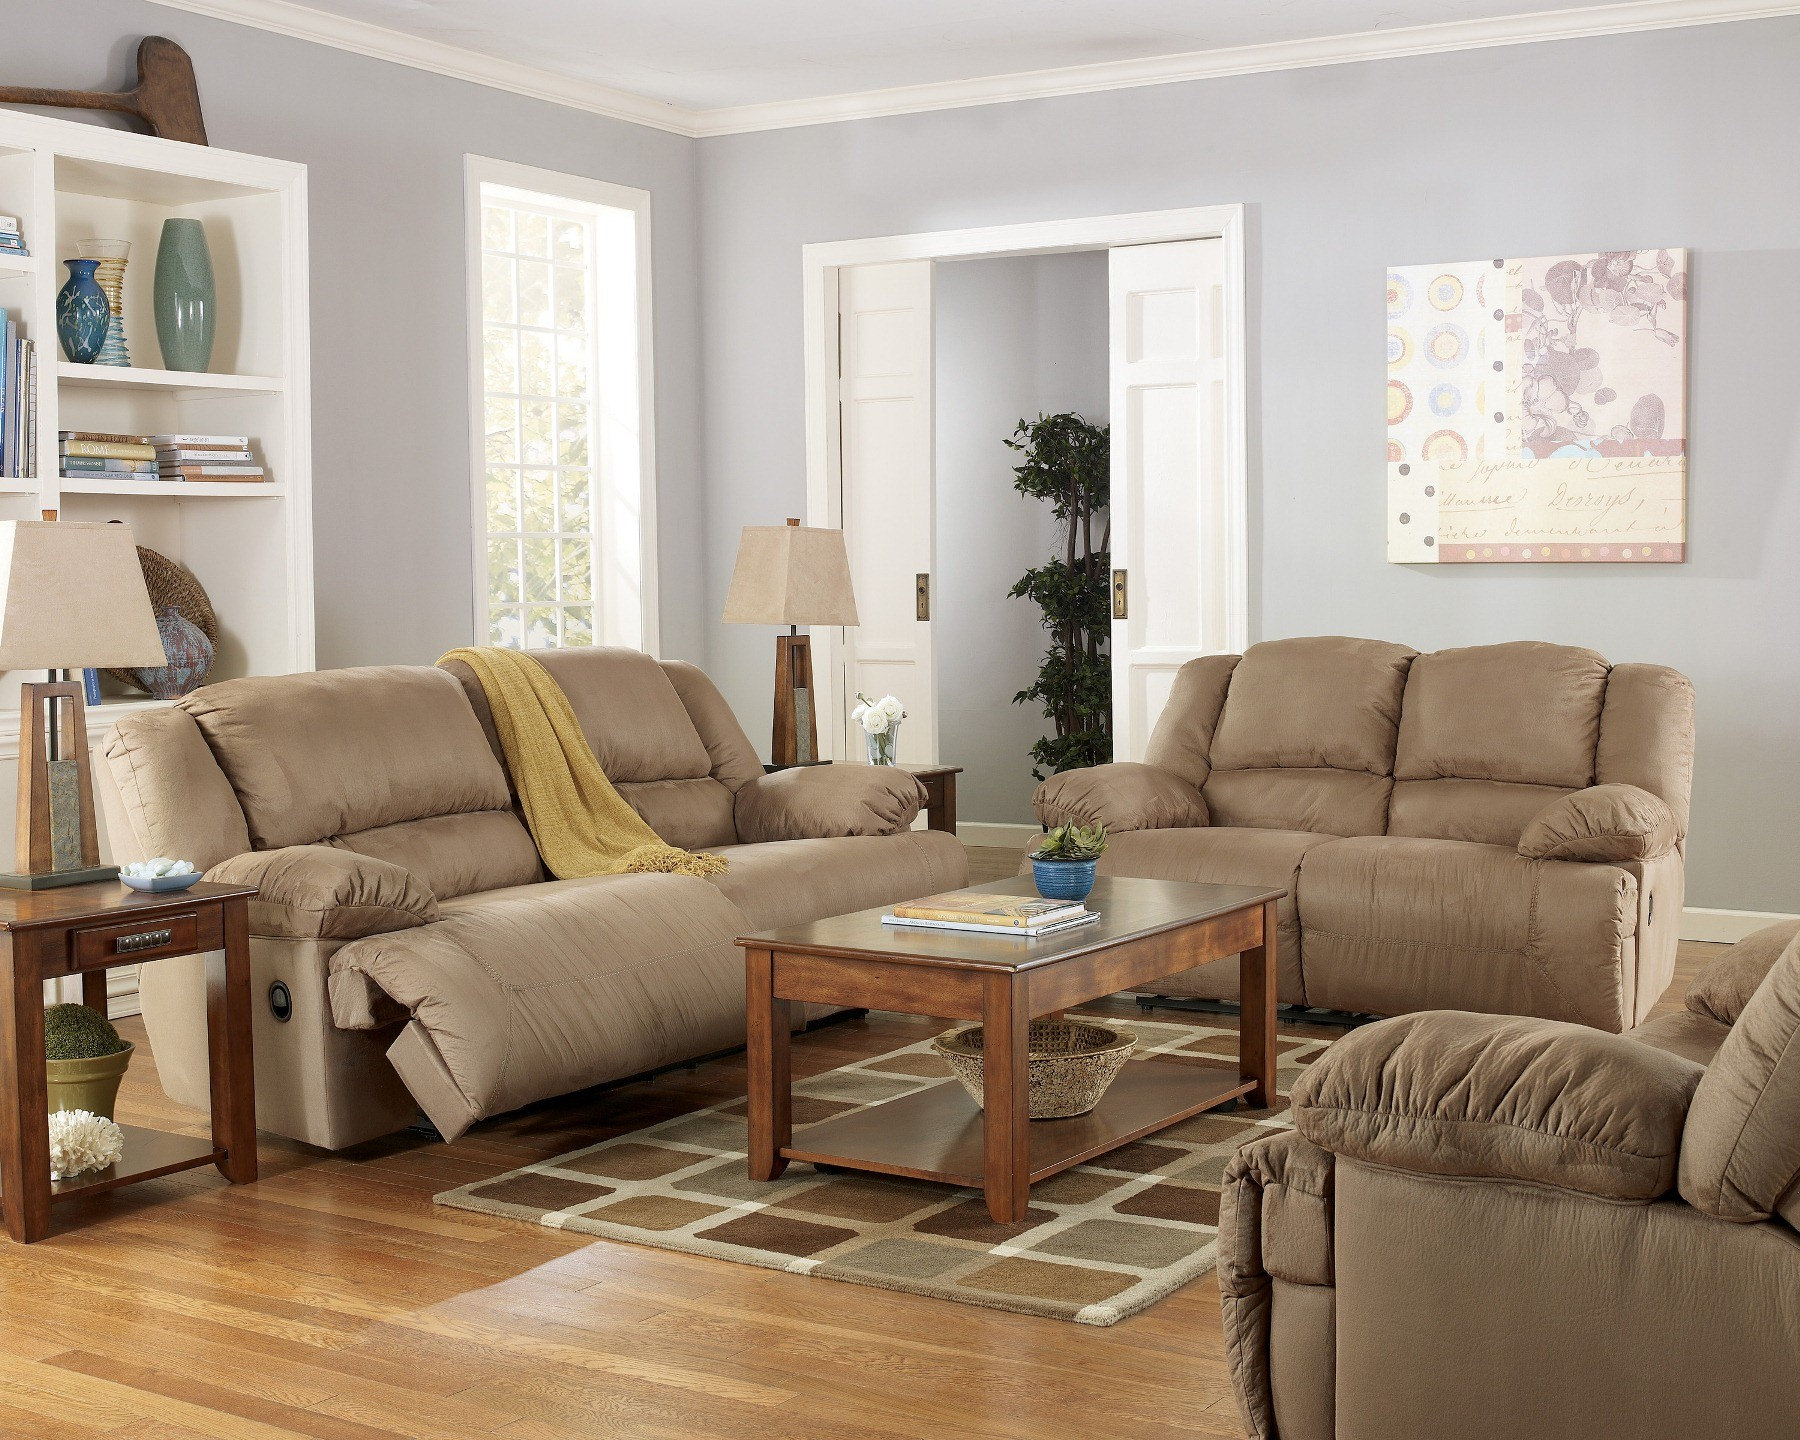 Hogan mocha reclining living room set from ashley 57802 - Small living room furniture for sale ...